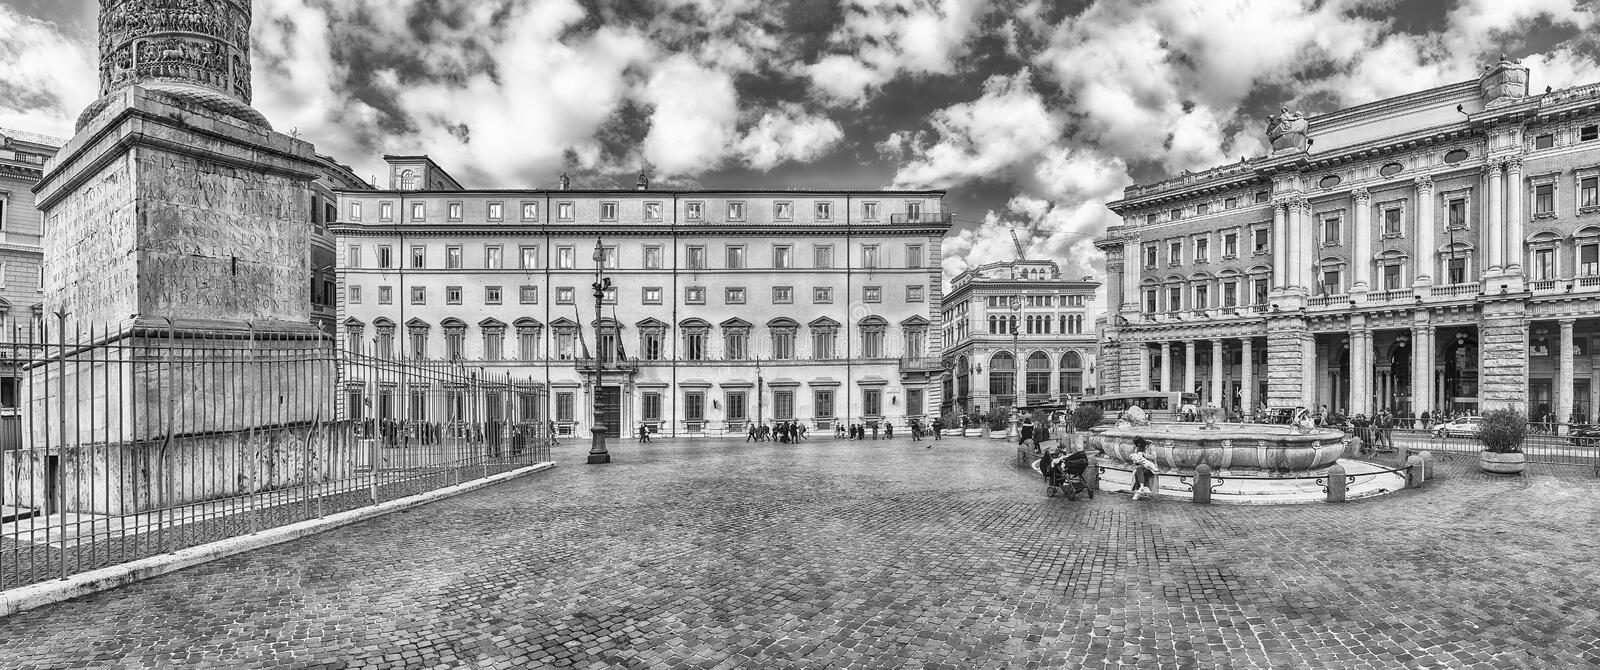 Vue panoramique de Piazza Colonna à Rome central, Italie image stock